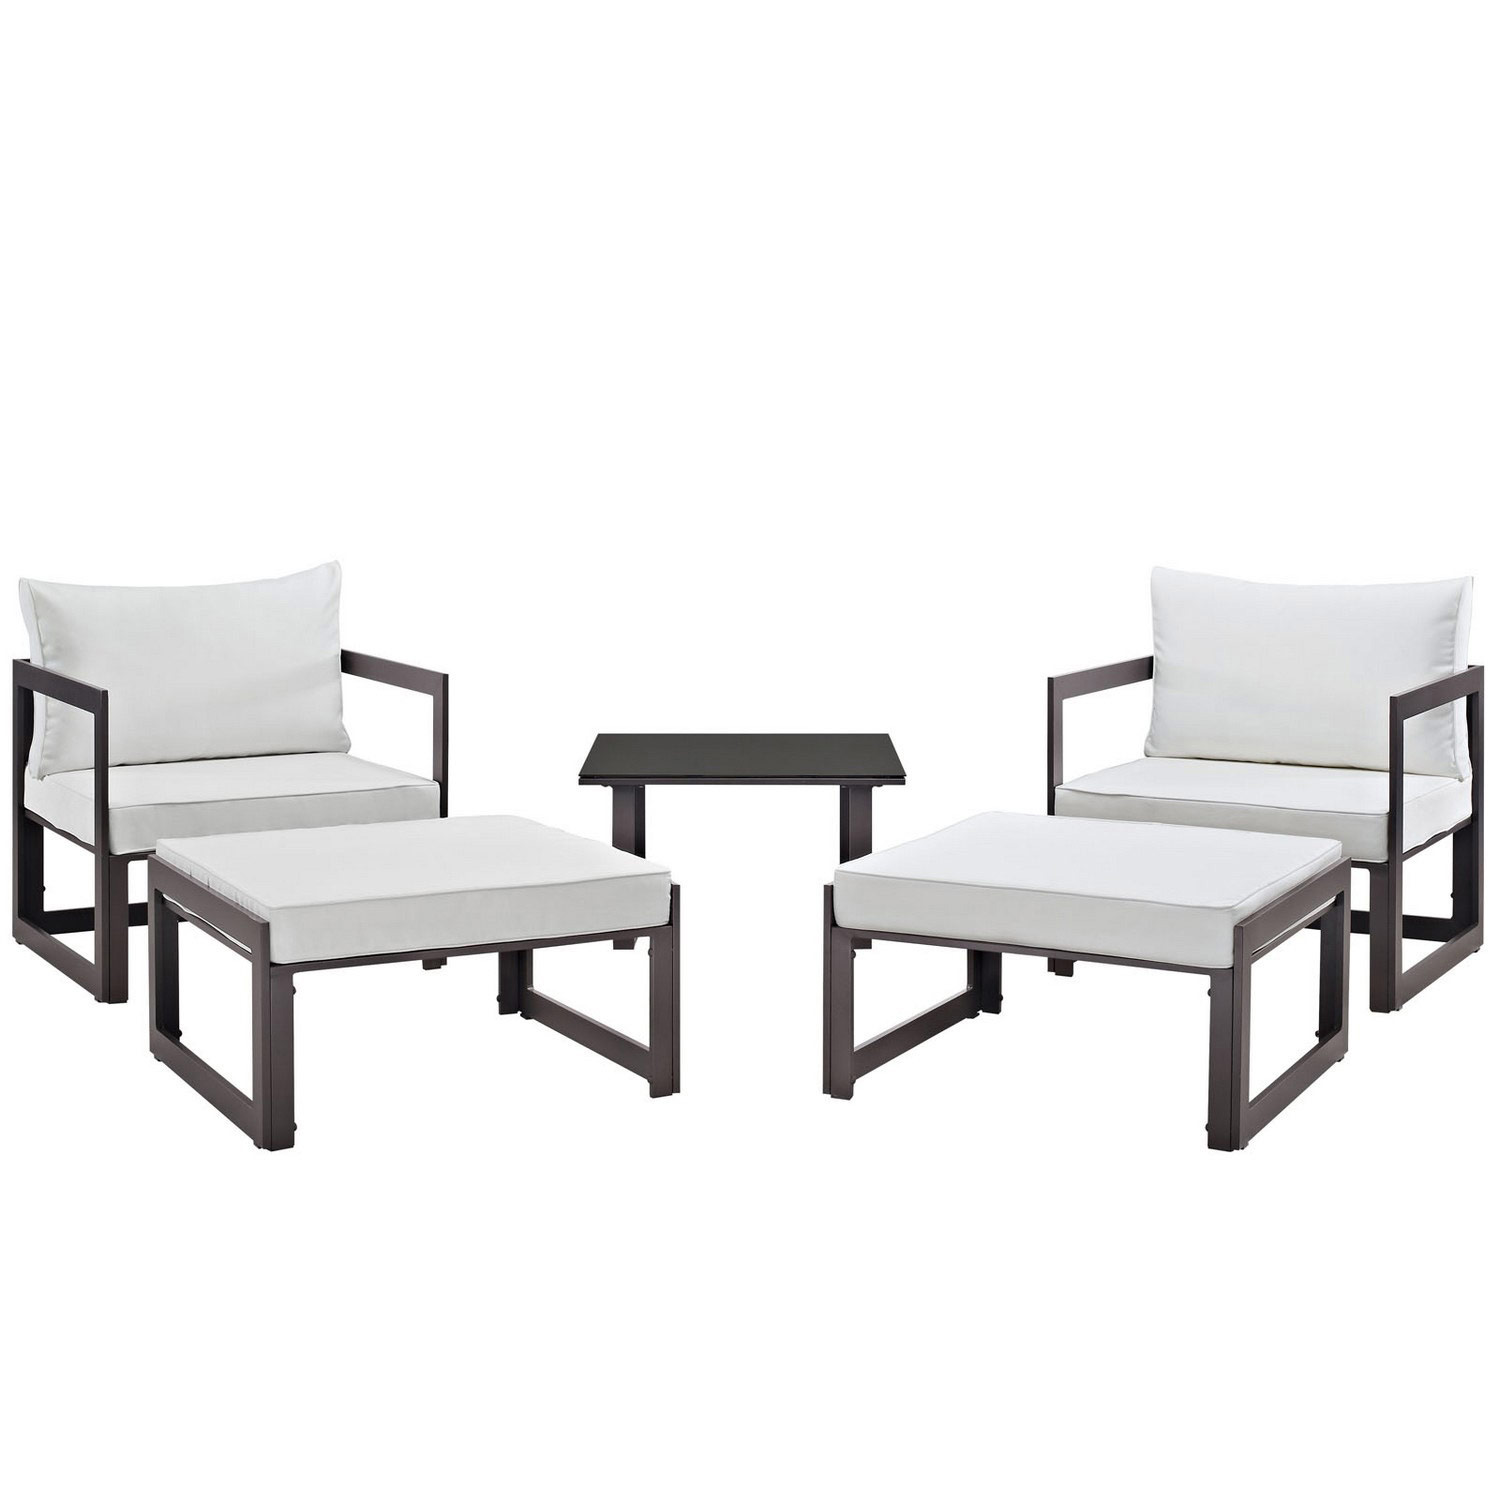 Modway Fortuna 5 Piece Outdoor Patio Sectional Sofa Set - Brown/White